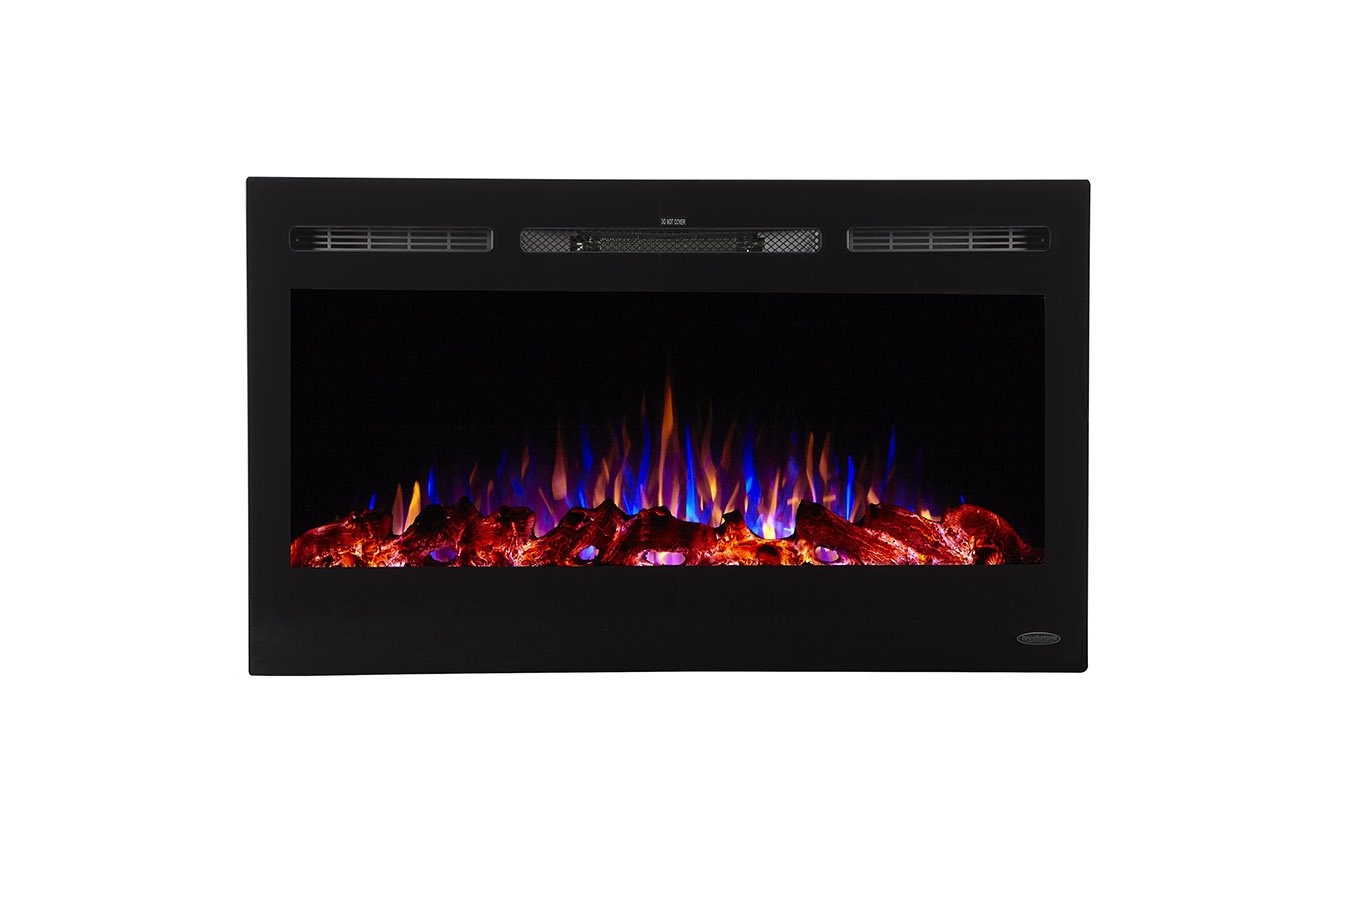 Touchstone 80014 - Sideline Electric Fireplace - 36 Inch Wide - in Wall Recessed - 5 Flame Settings - Realistic 3 Color Flame - 1500/750 Watt Heater - (Black) - Log & Crystal Hearth Options by Touchstone